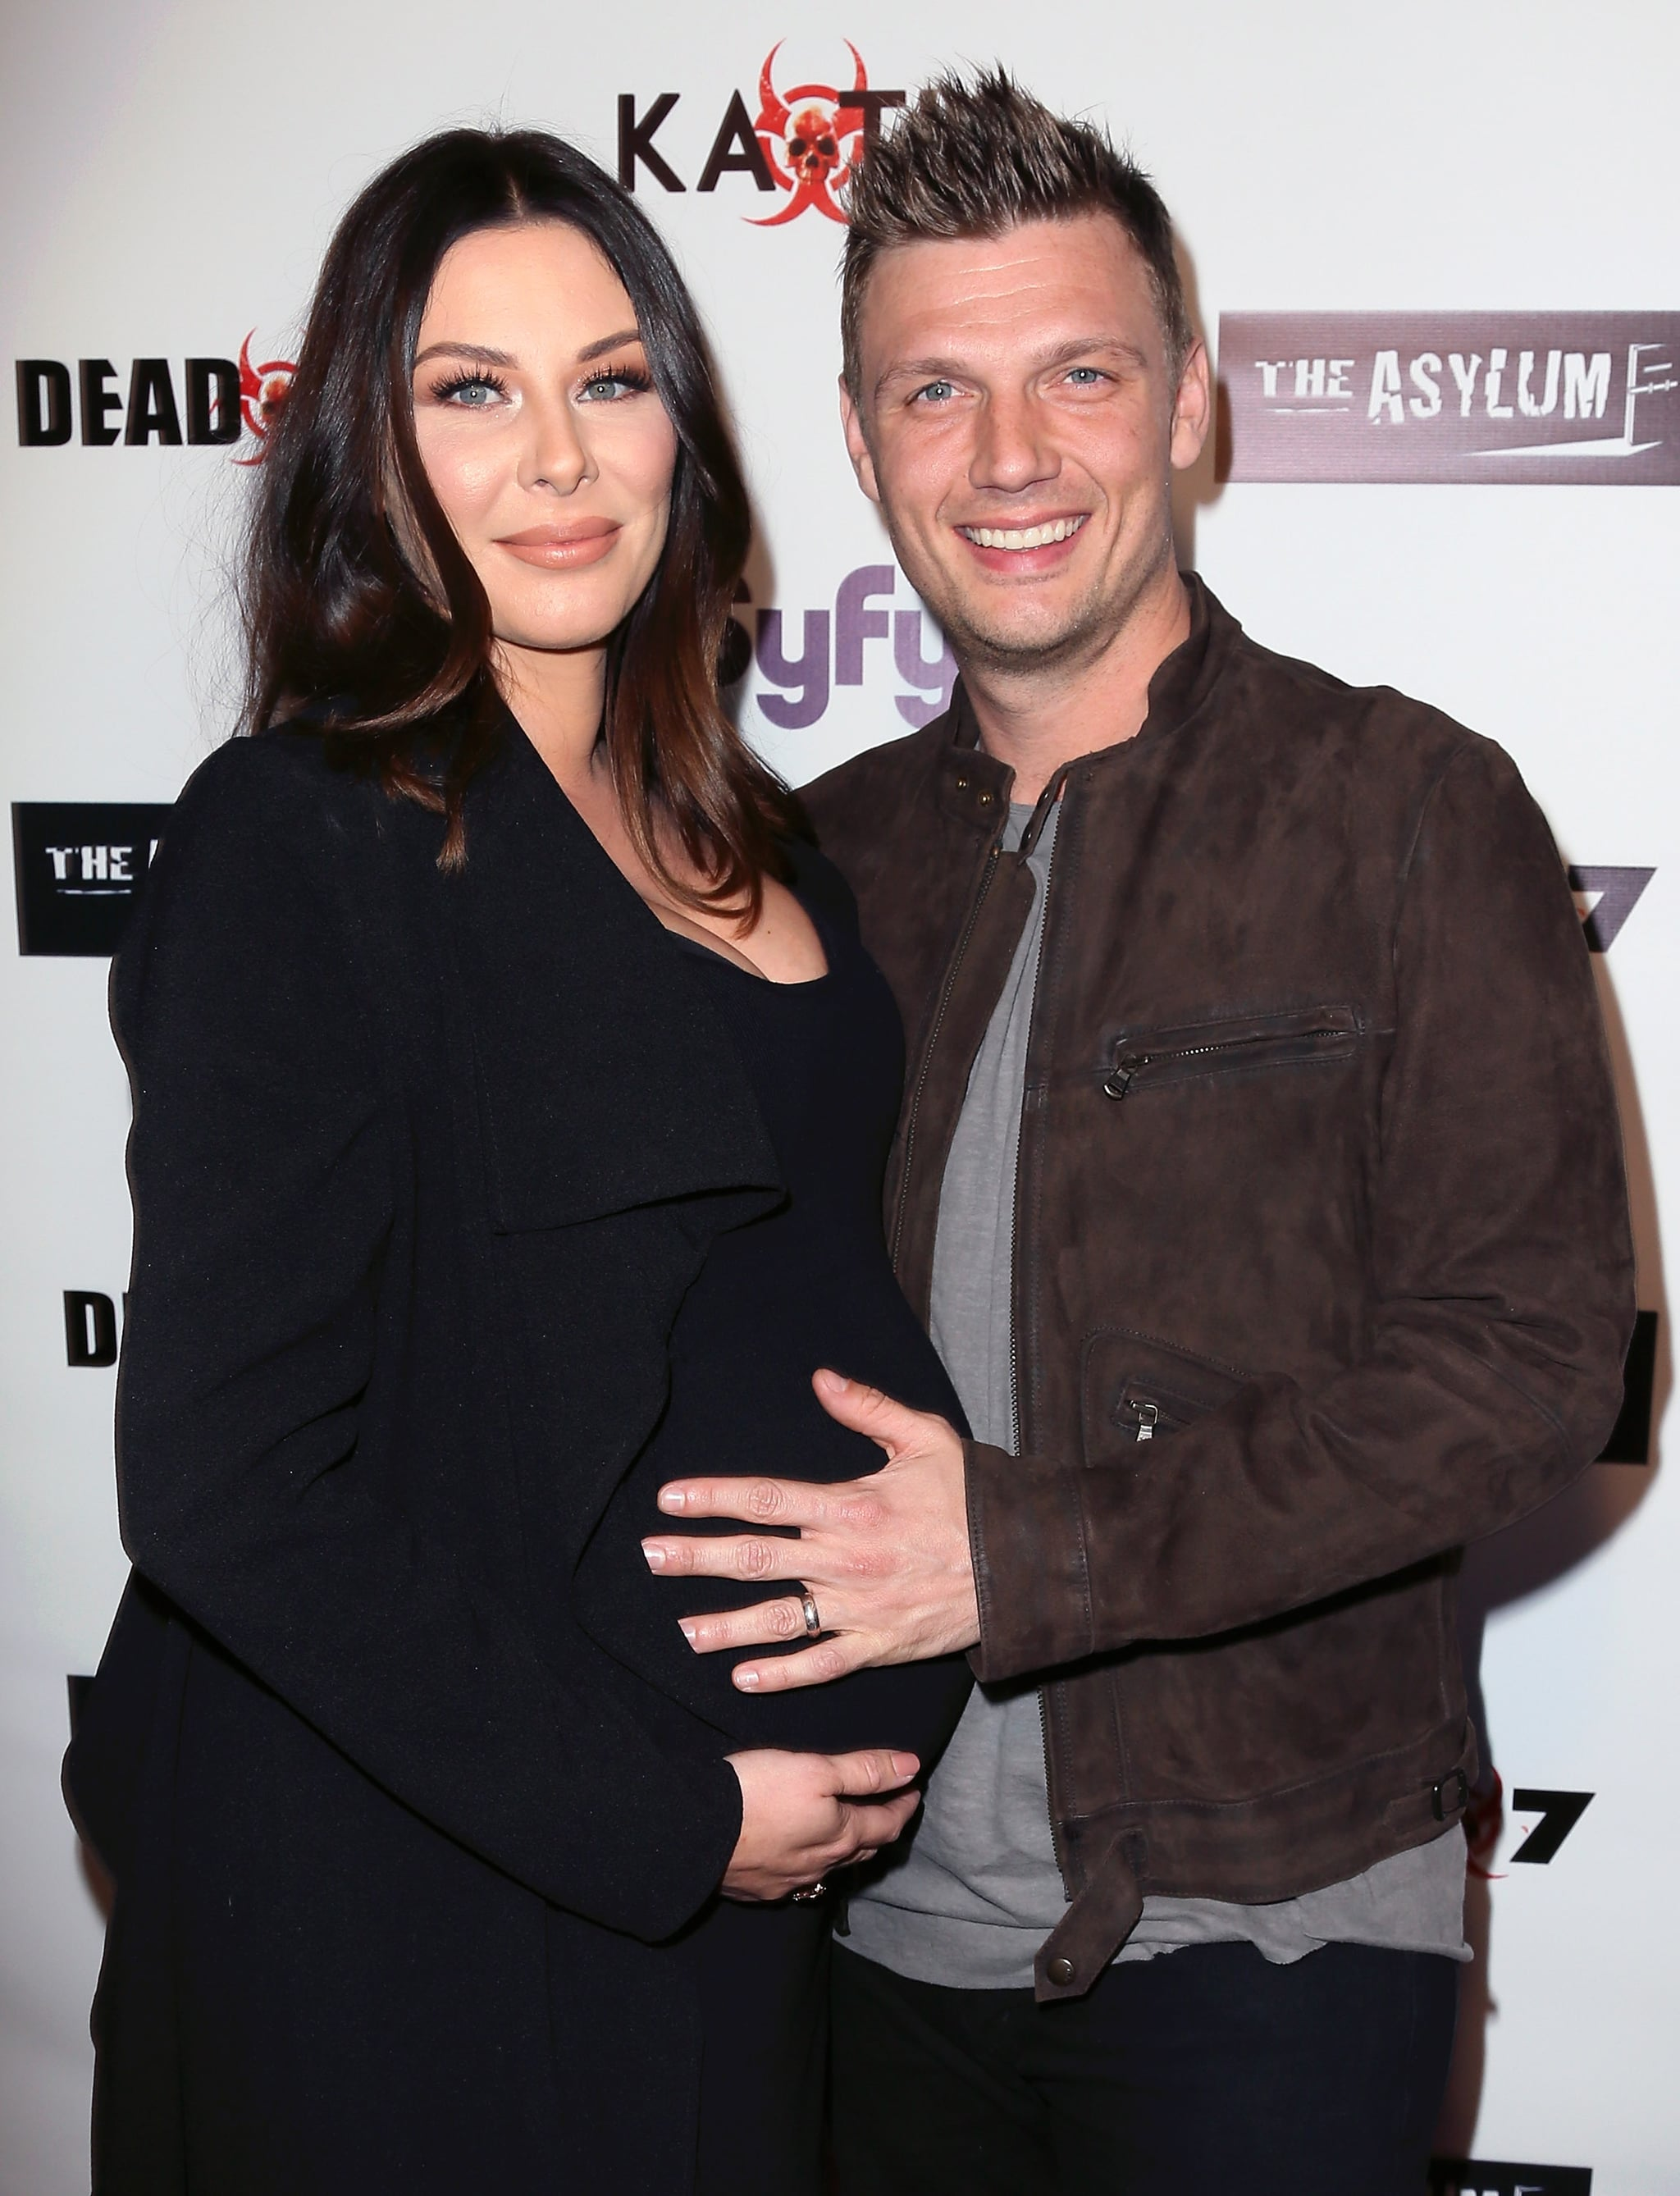 LOS ANGELES, CALIFORNIA - APRIL 01:  Singer Nick Carter (R) and wife Lauren Kitt attend the premiere of Syfy's